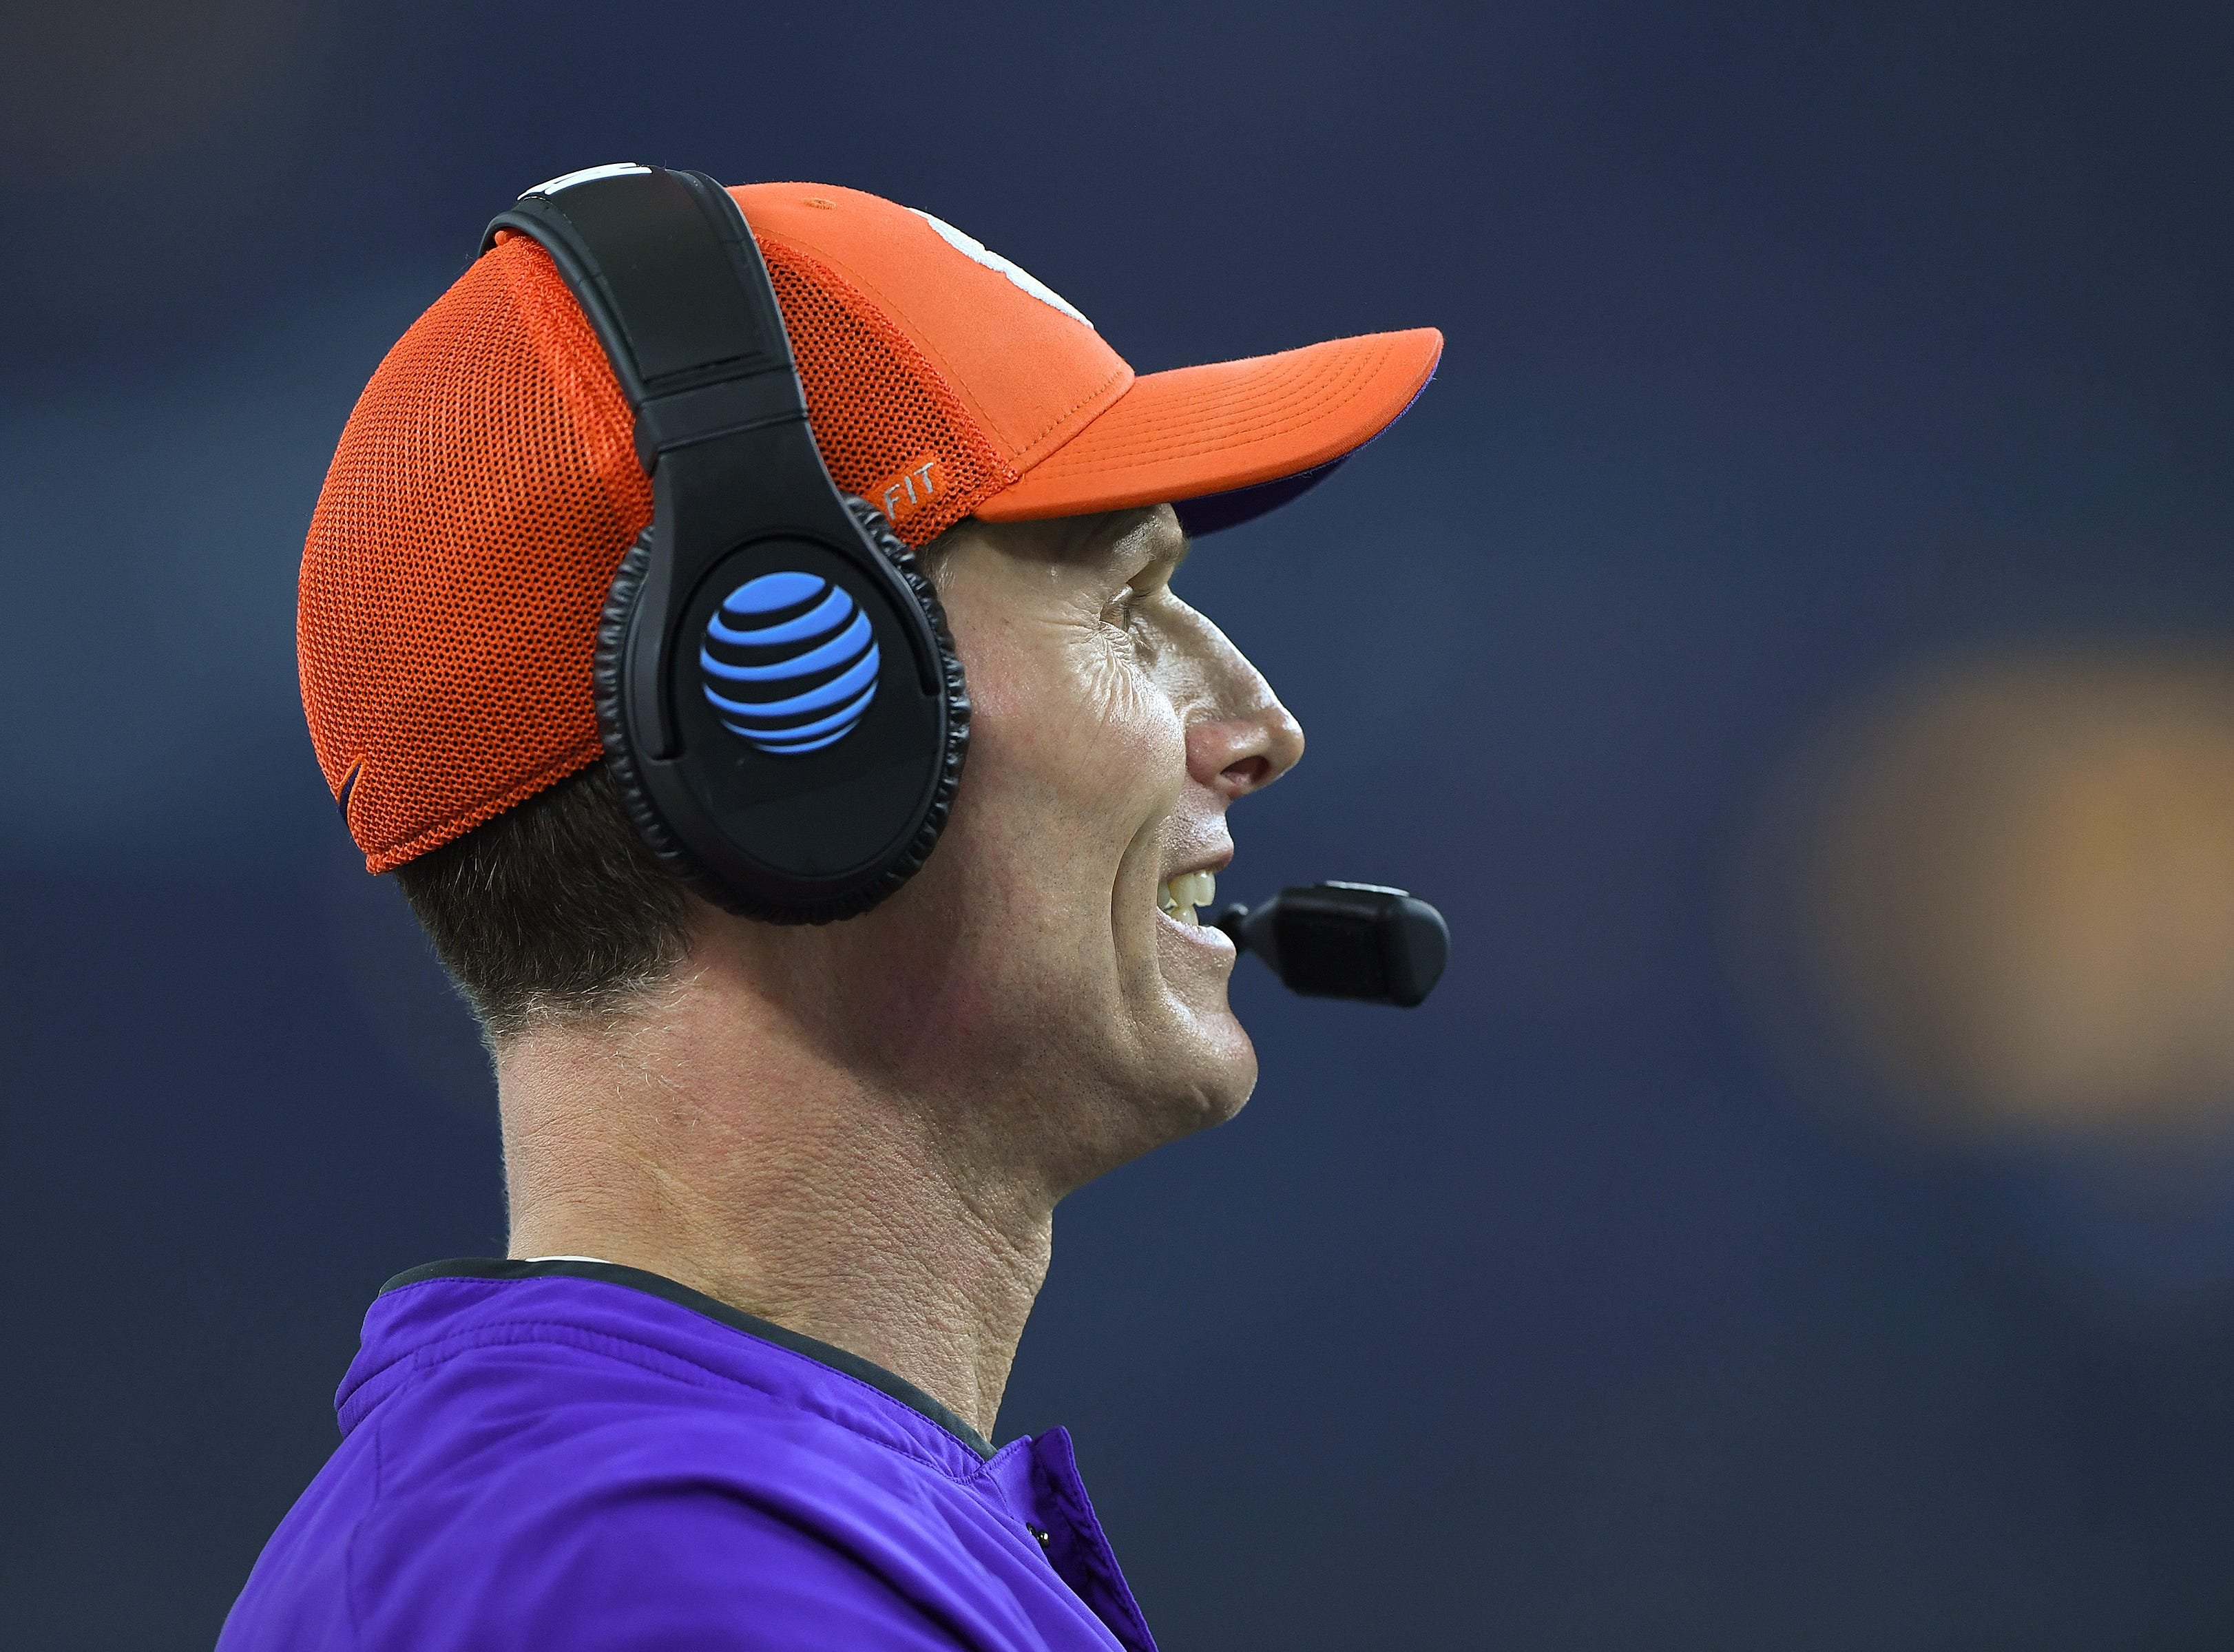 Clemson defensive coordinator Brent Venables coaches against Notre Dame during the 1st quarter of the Goodyear Cotton Bowl at AT&T stadium in Arlington, TX Saturday, December 29, 2018.